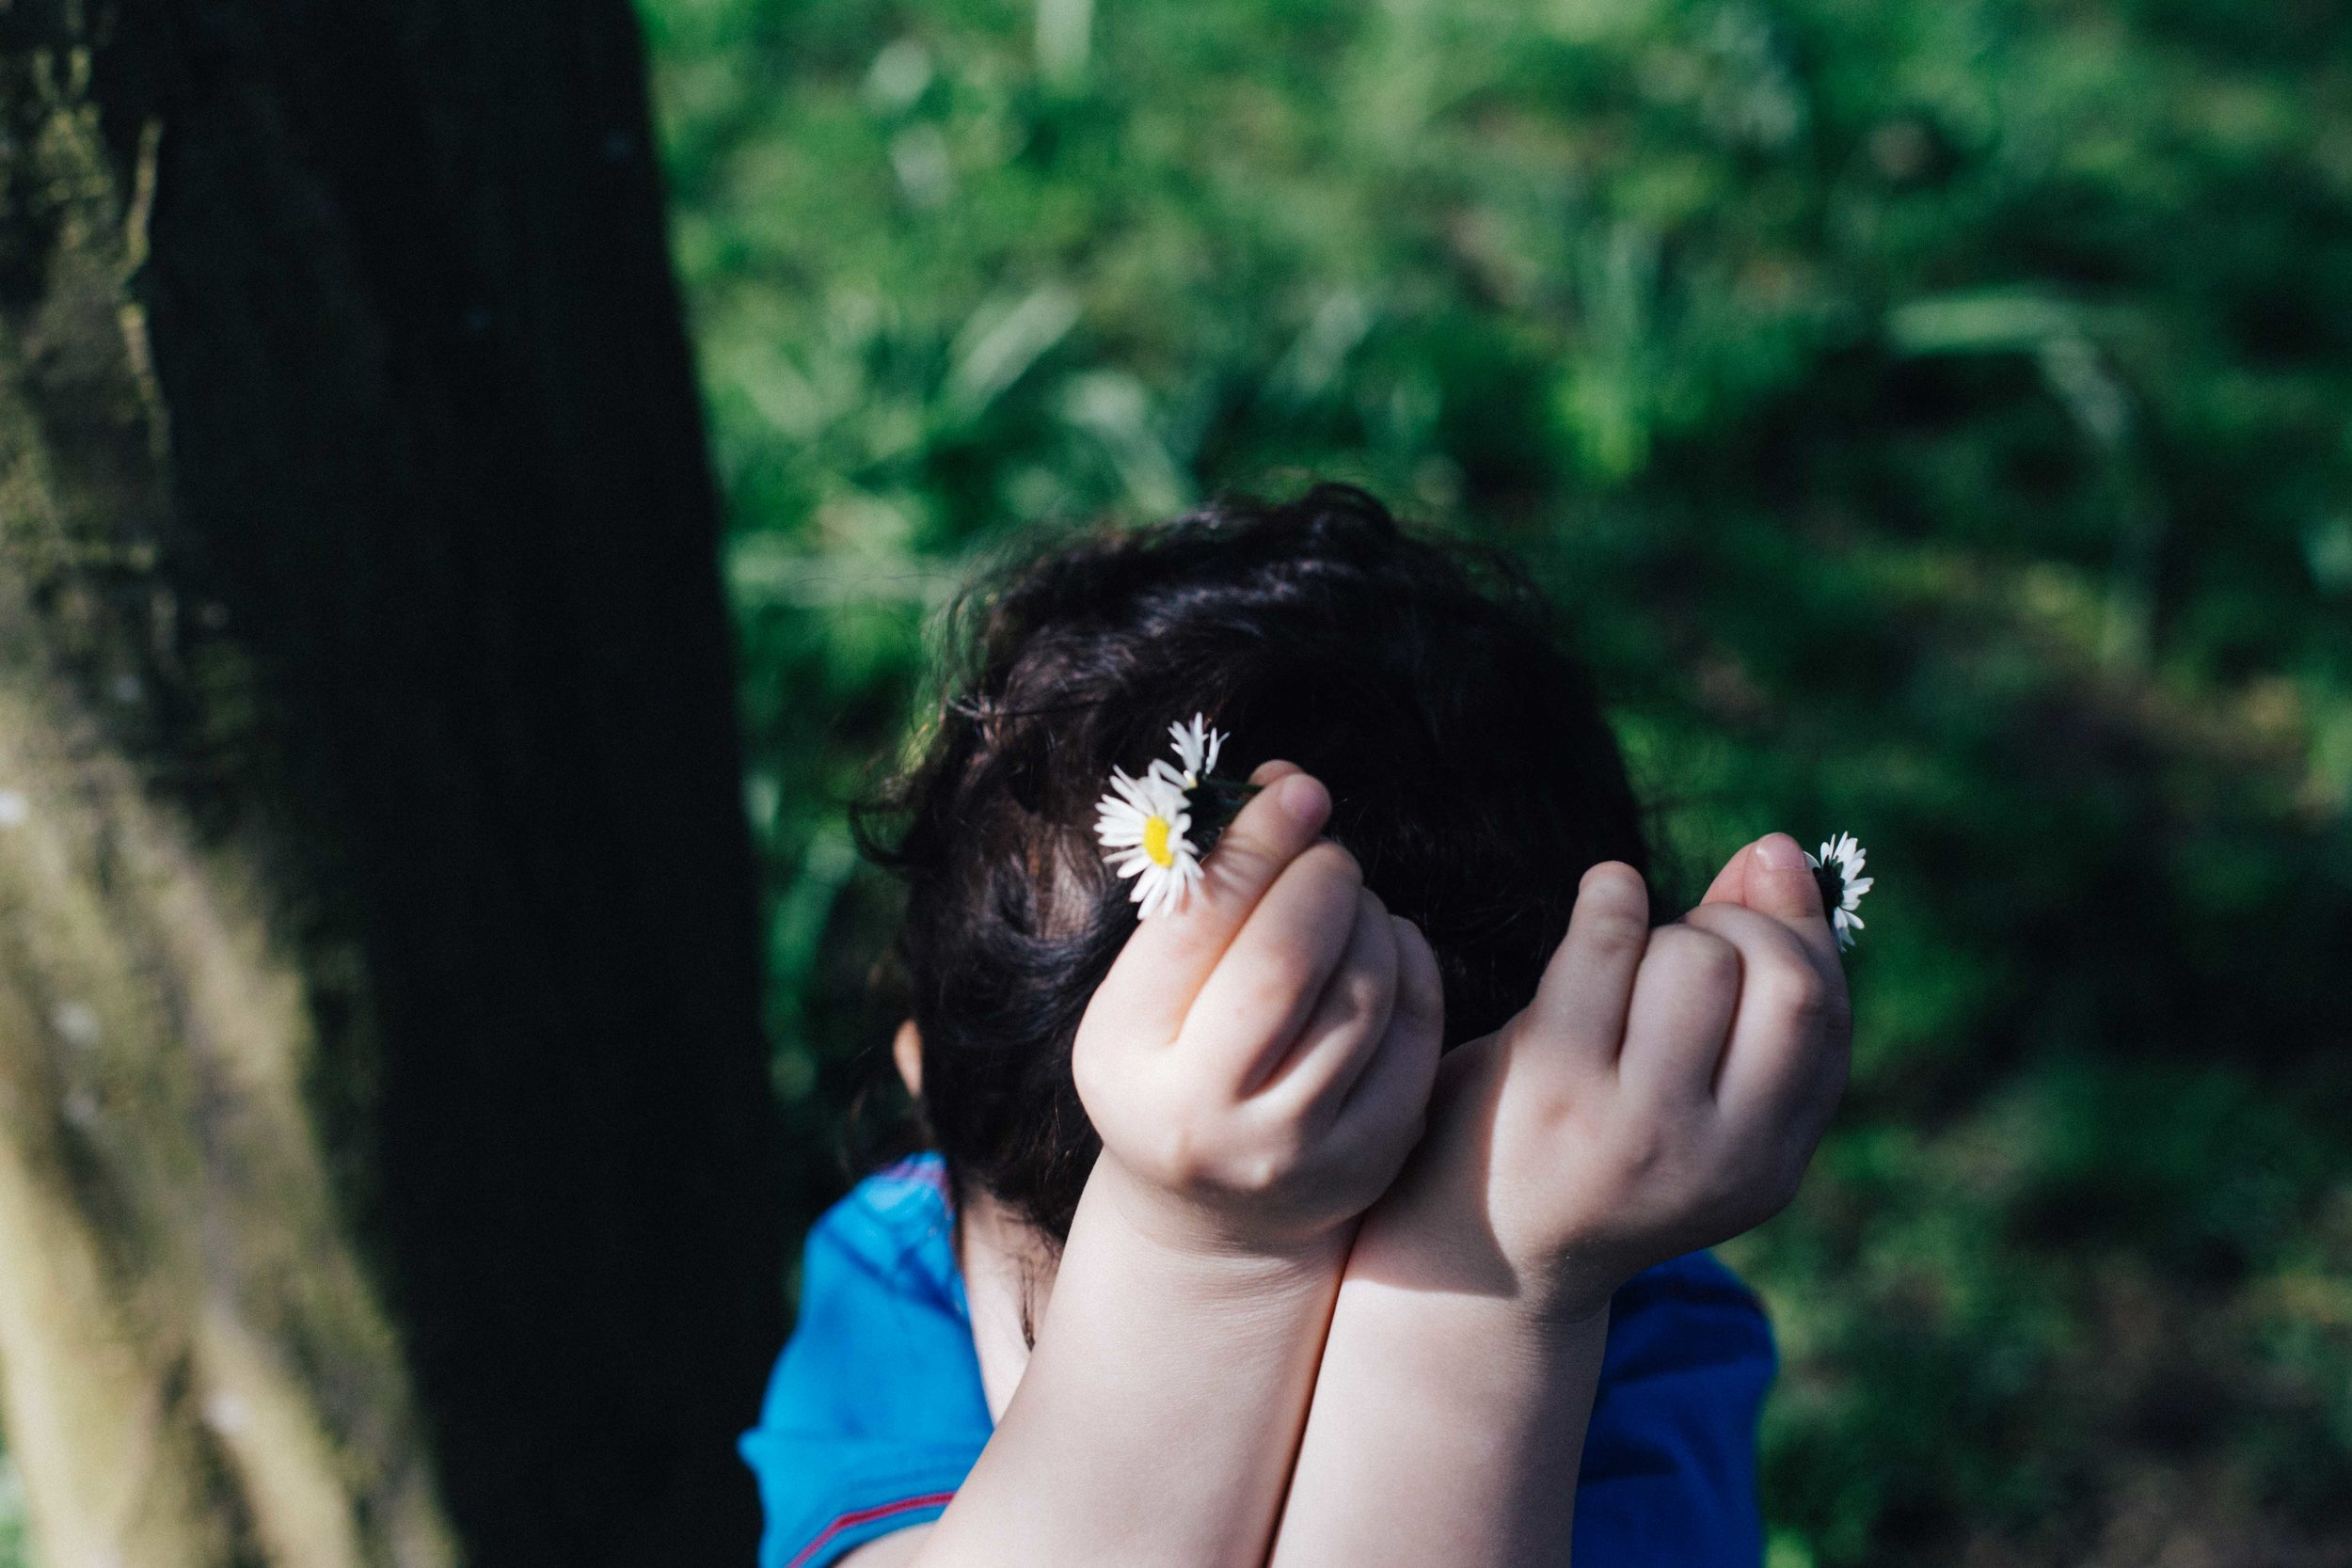 Child holding flowers above his head at Horniman Museum, Forrest Hill, London